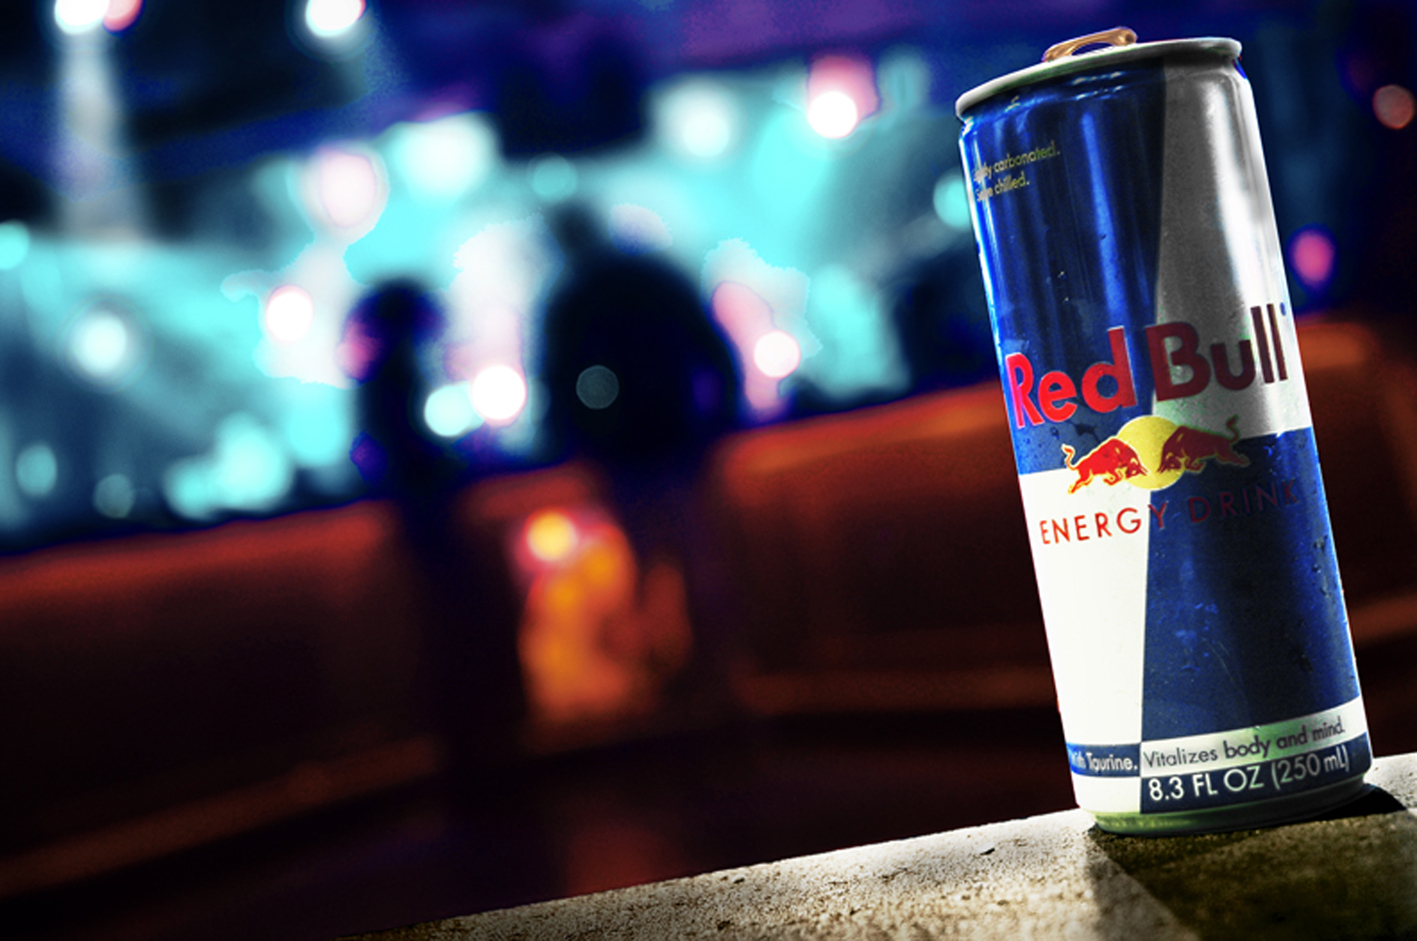 red bull marketing Check out marketing manager profiles at red bull, job listings & salaries review & learn skills to be a marketing manager.